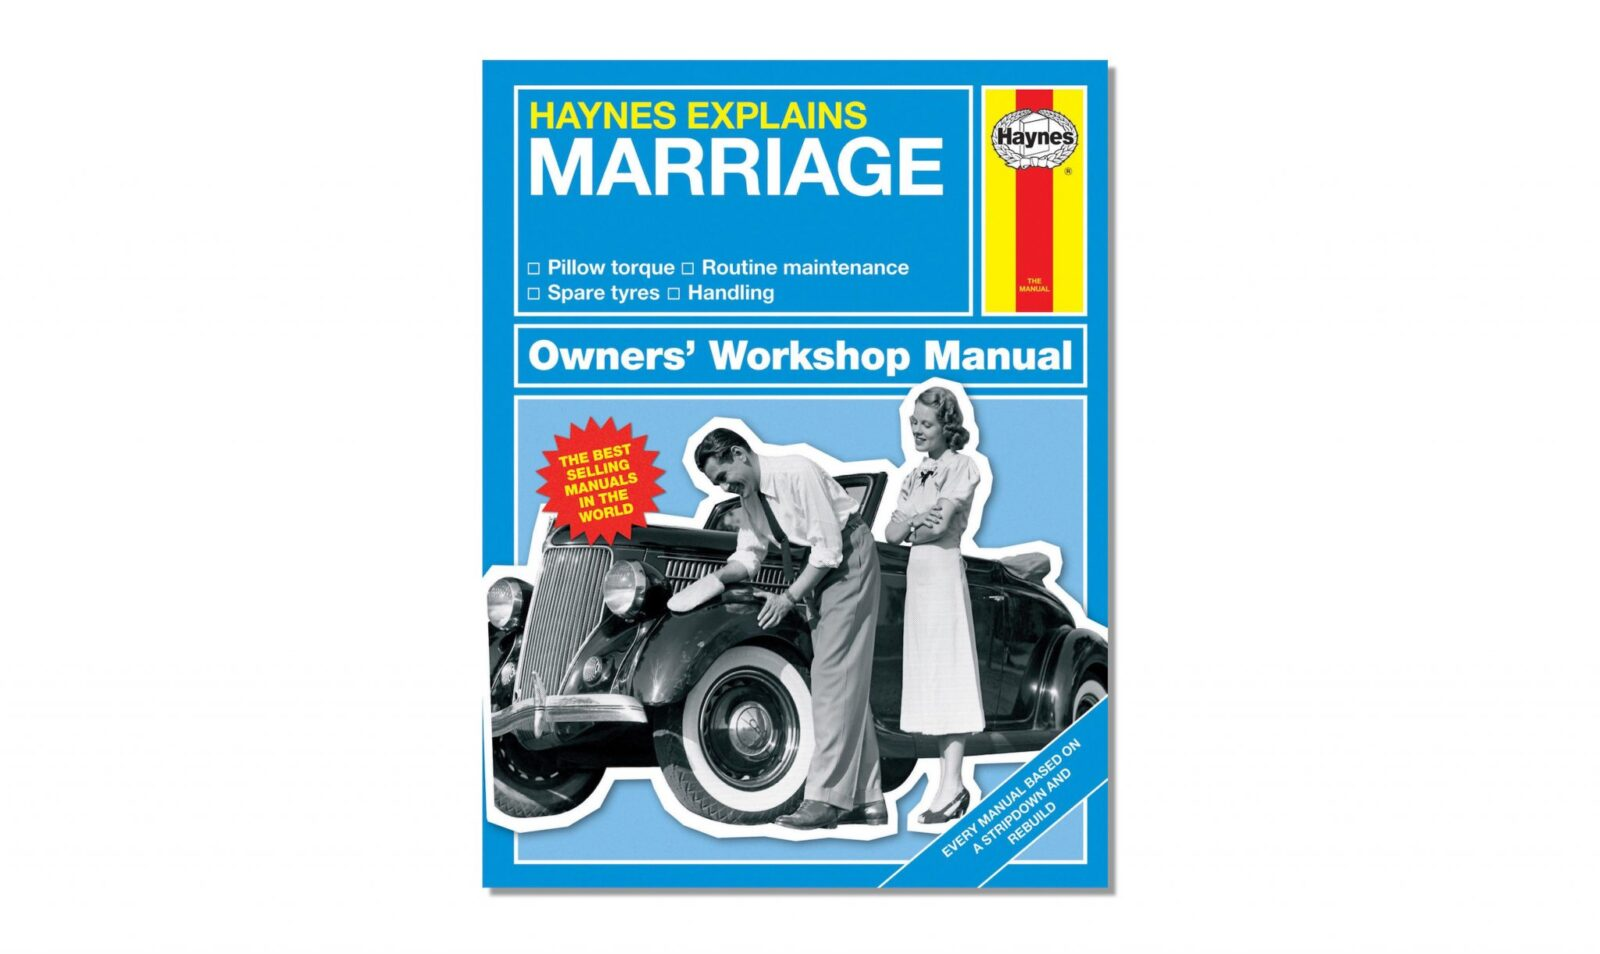 Haynes Owners Workshop Manual Marriage 1600x954 - Haynes Owner's Workshop Manual: Marriage